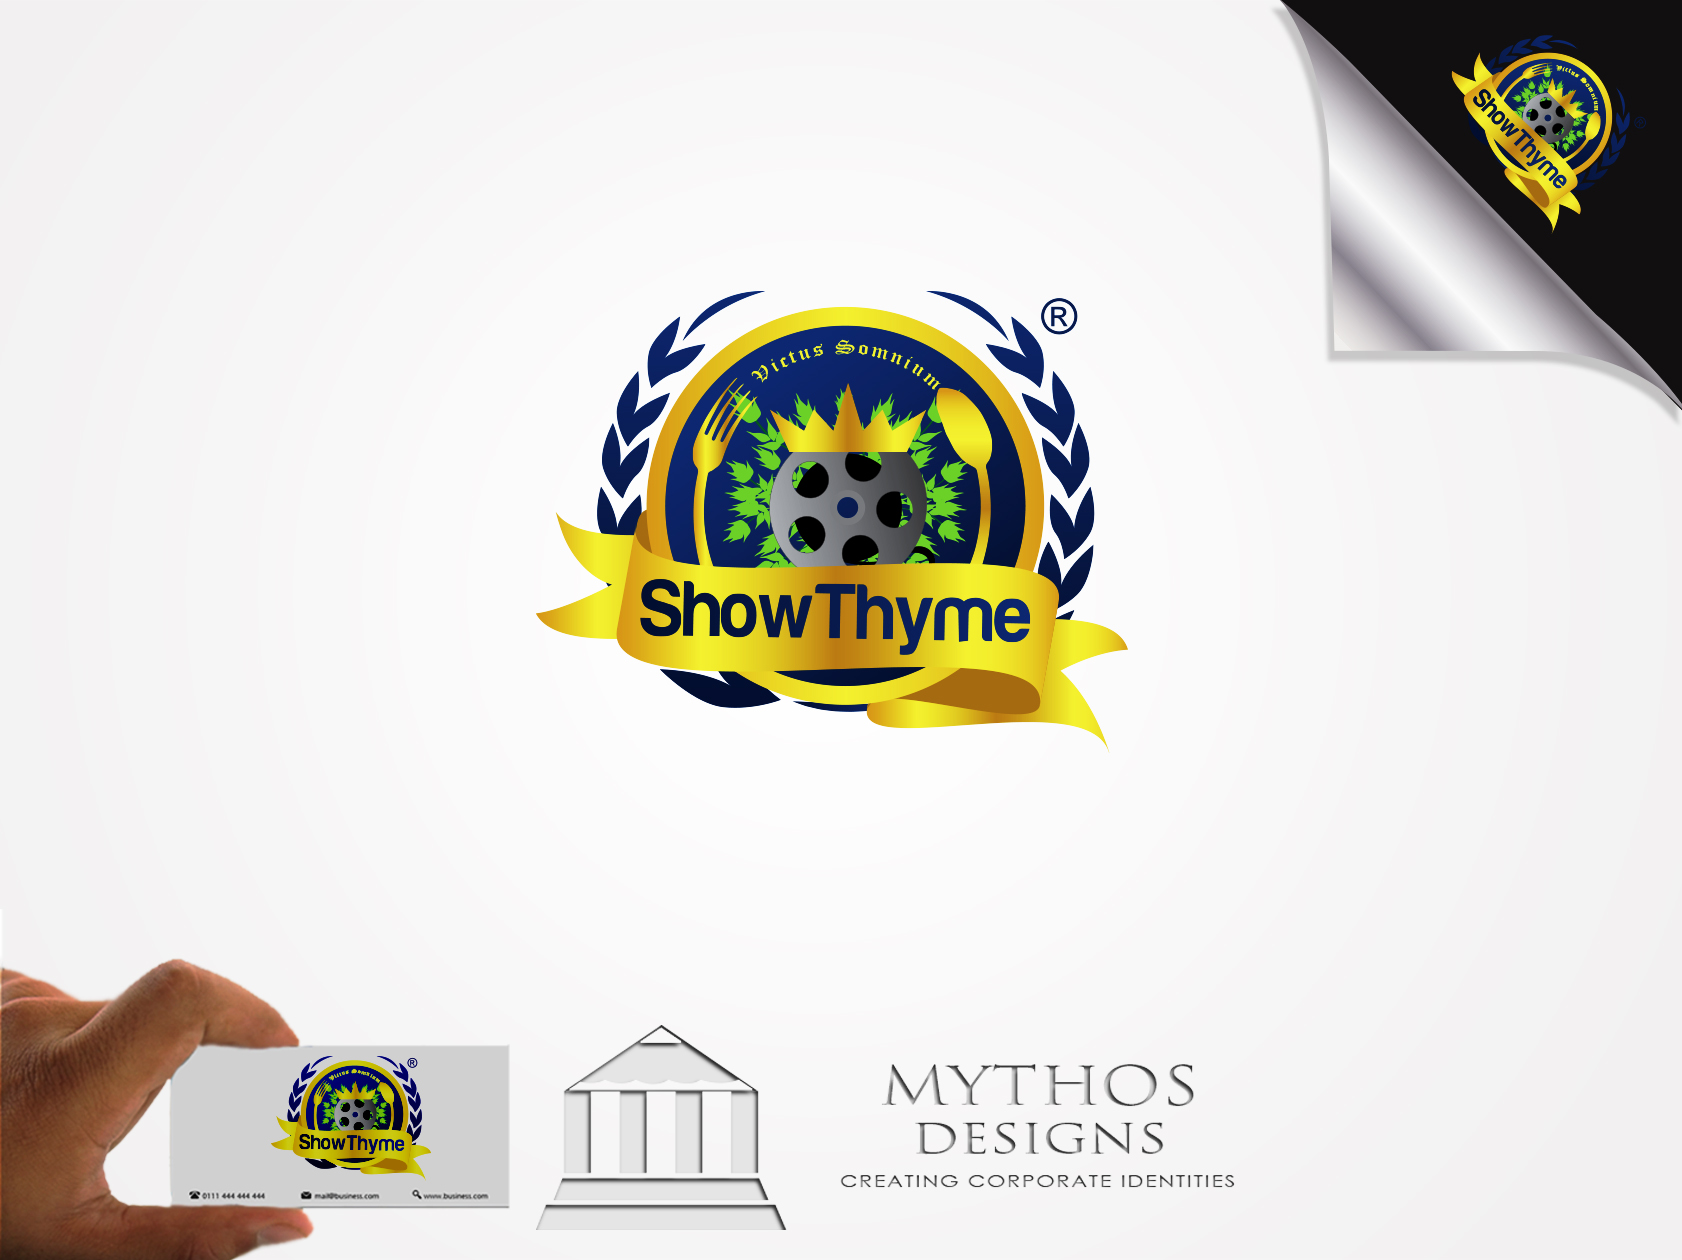 Logo Design by Mythos Designs - Entry No. 55 in the Logo Design Contest Showthyme Catering Logo Design.